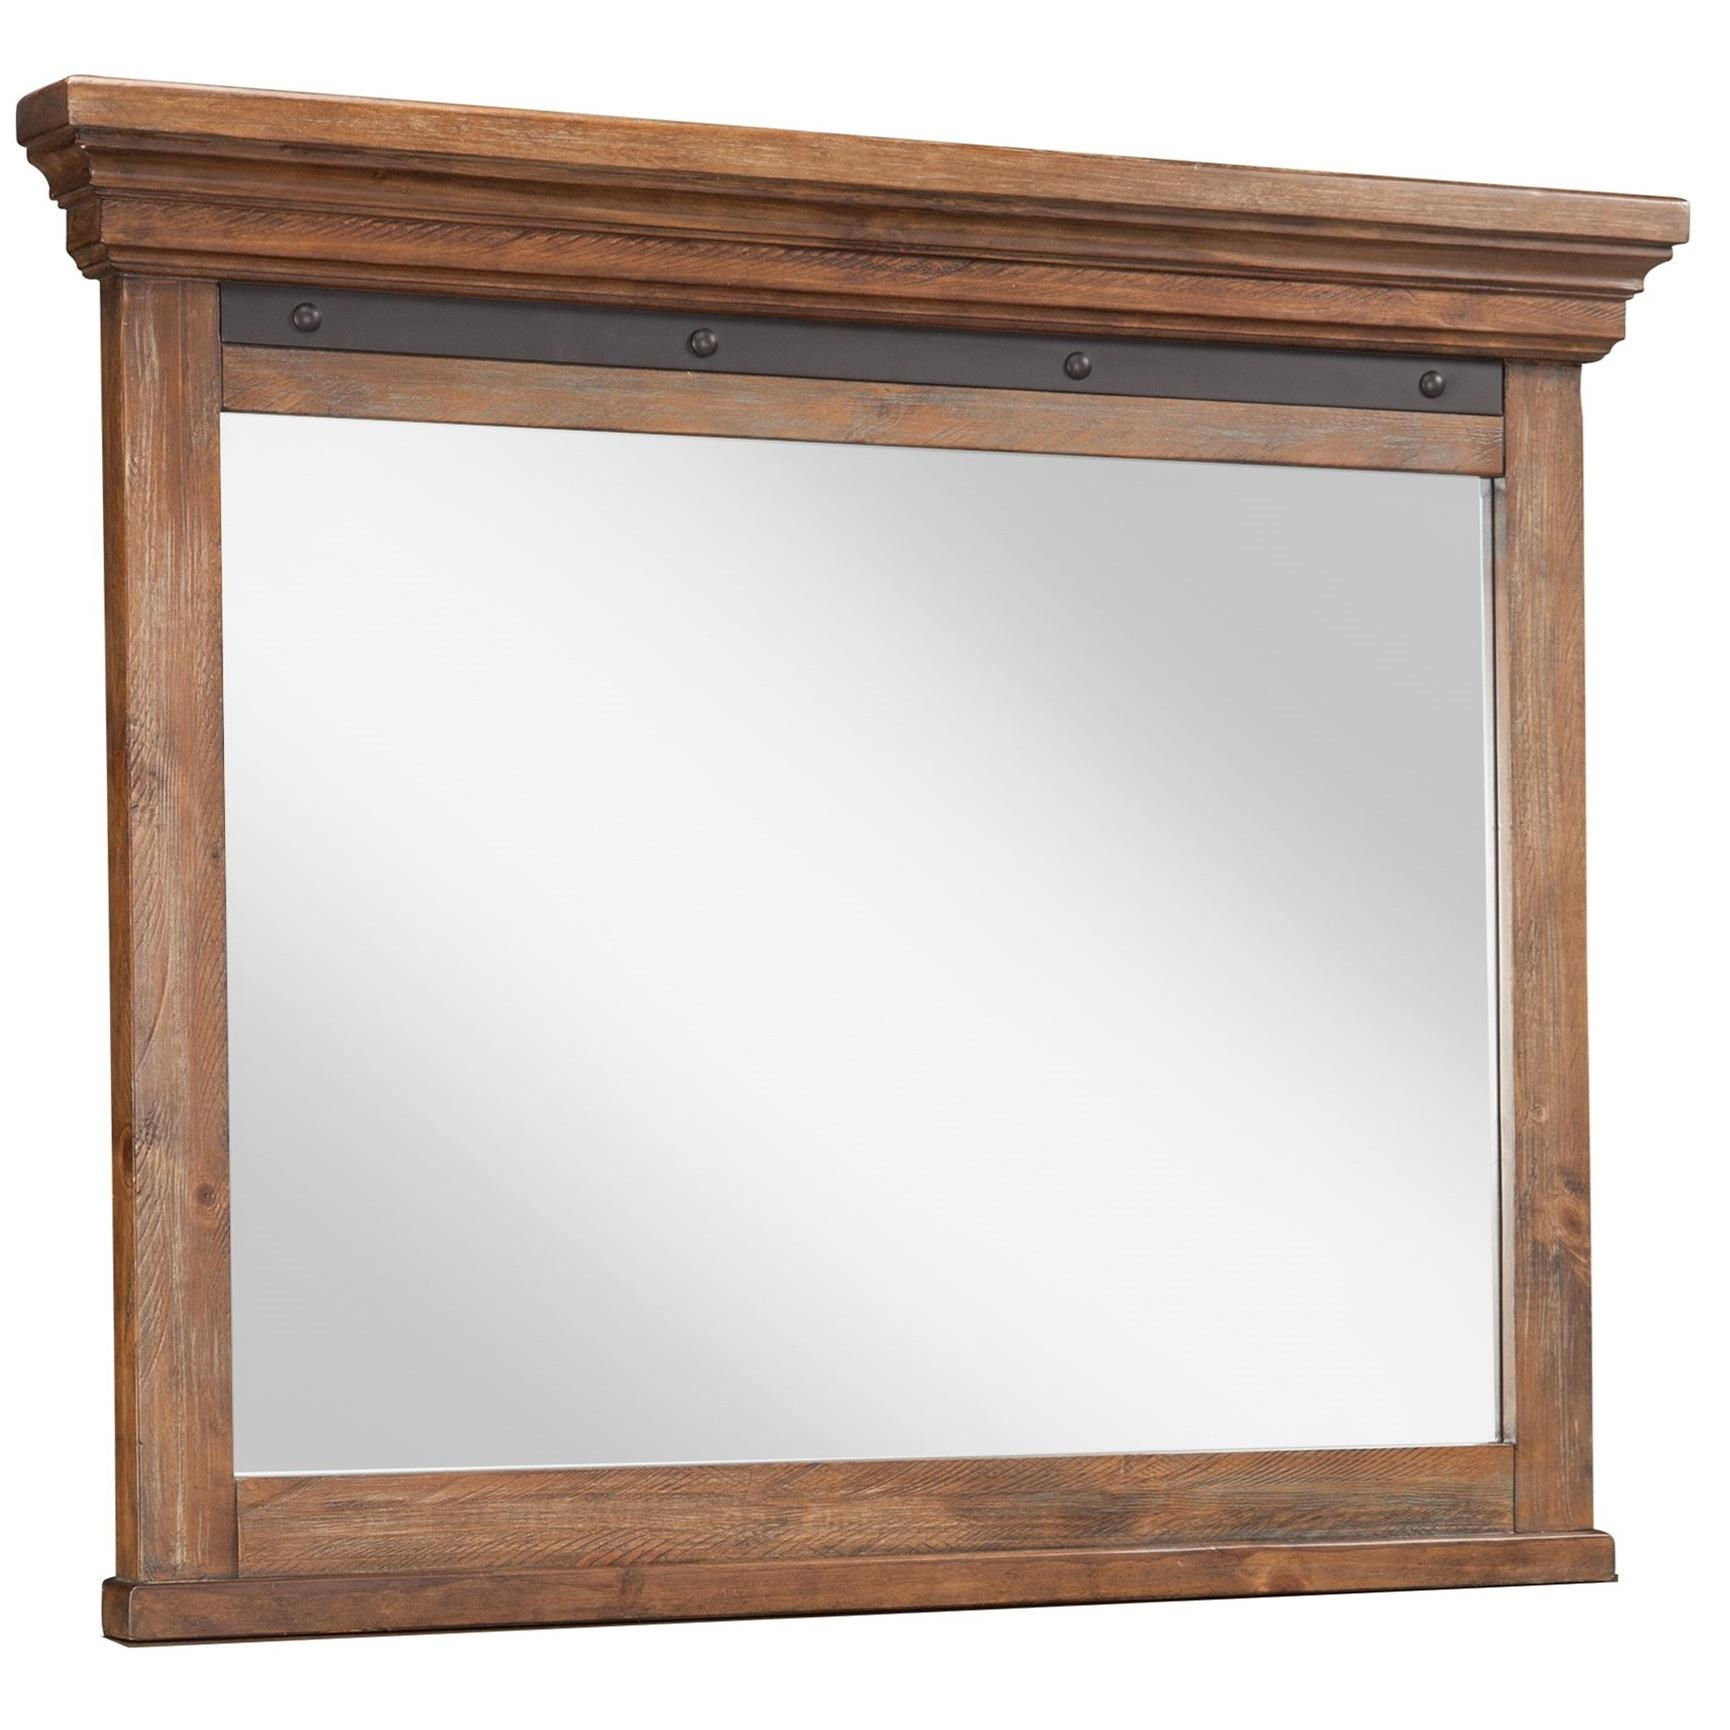 Taos Dresser Mirror by Intercon at Rife's Home Furniture